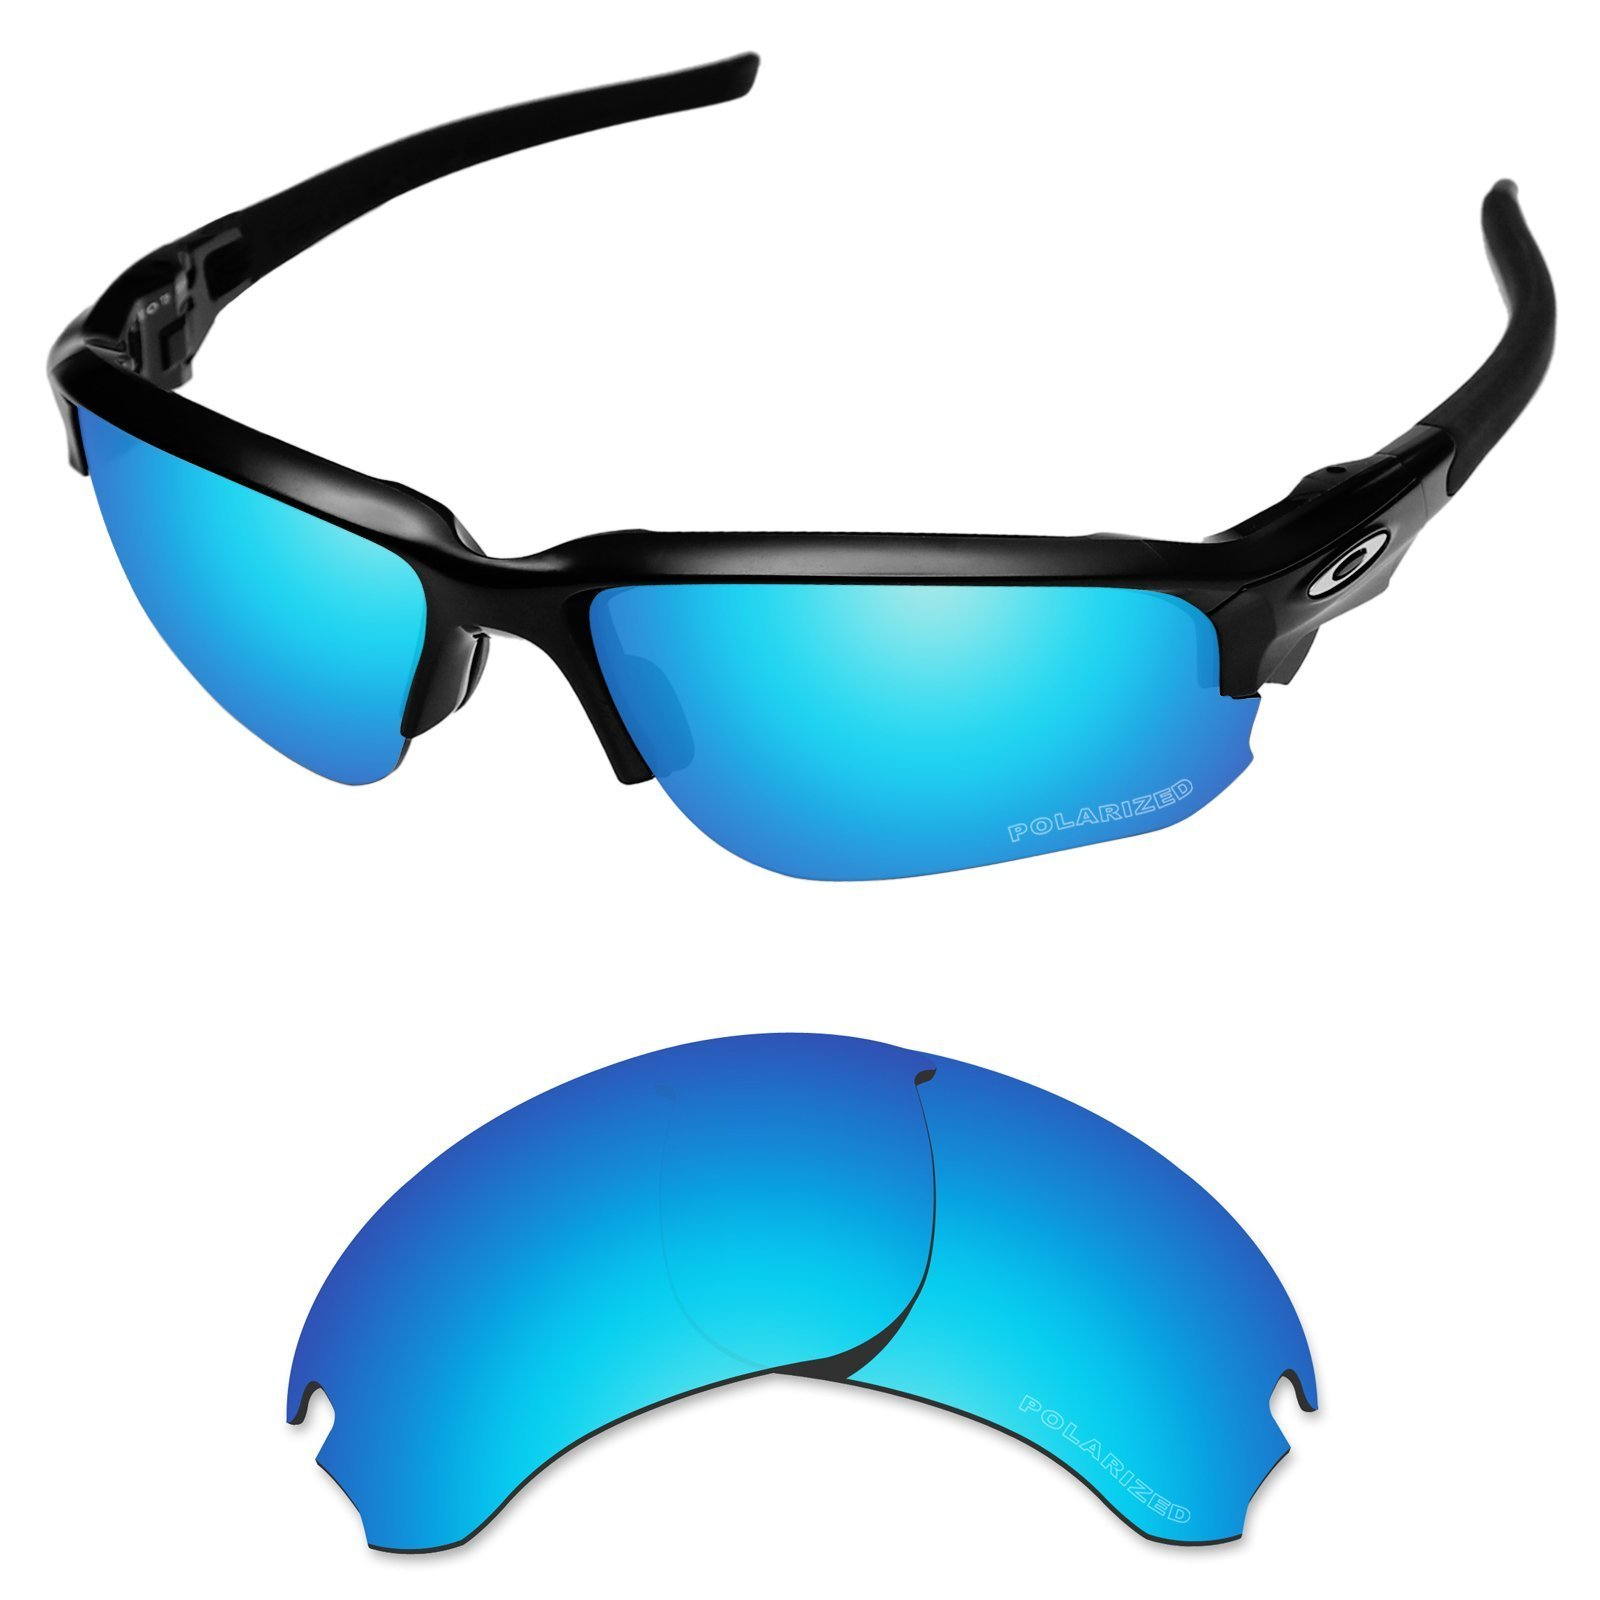 Tintart Performance Replacement Lenses for Oakley Si Speed Jacket Sunglass Polarized Etched-Sky Blue